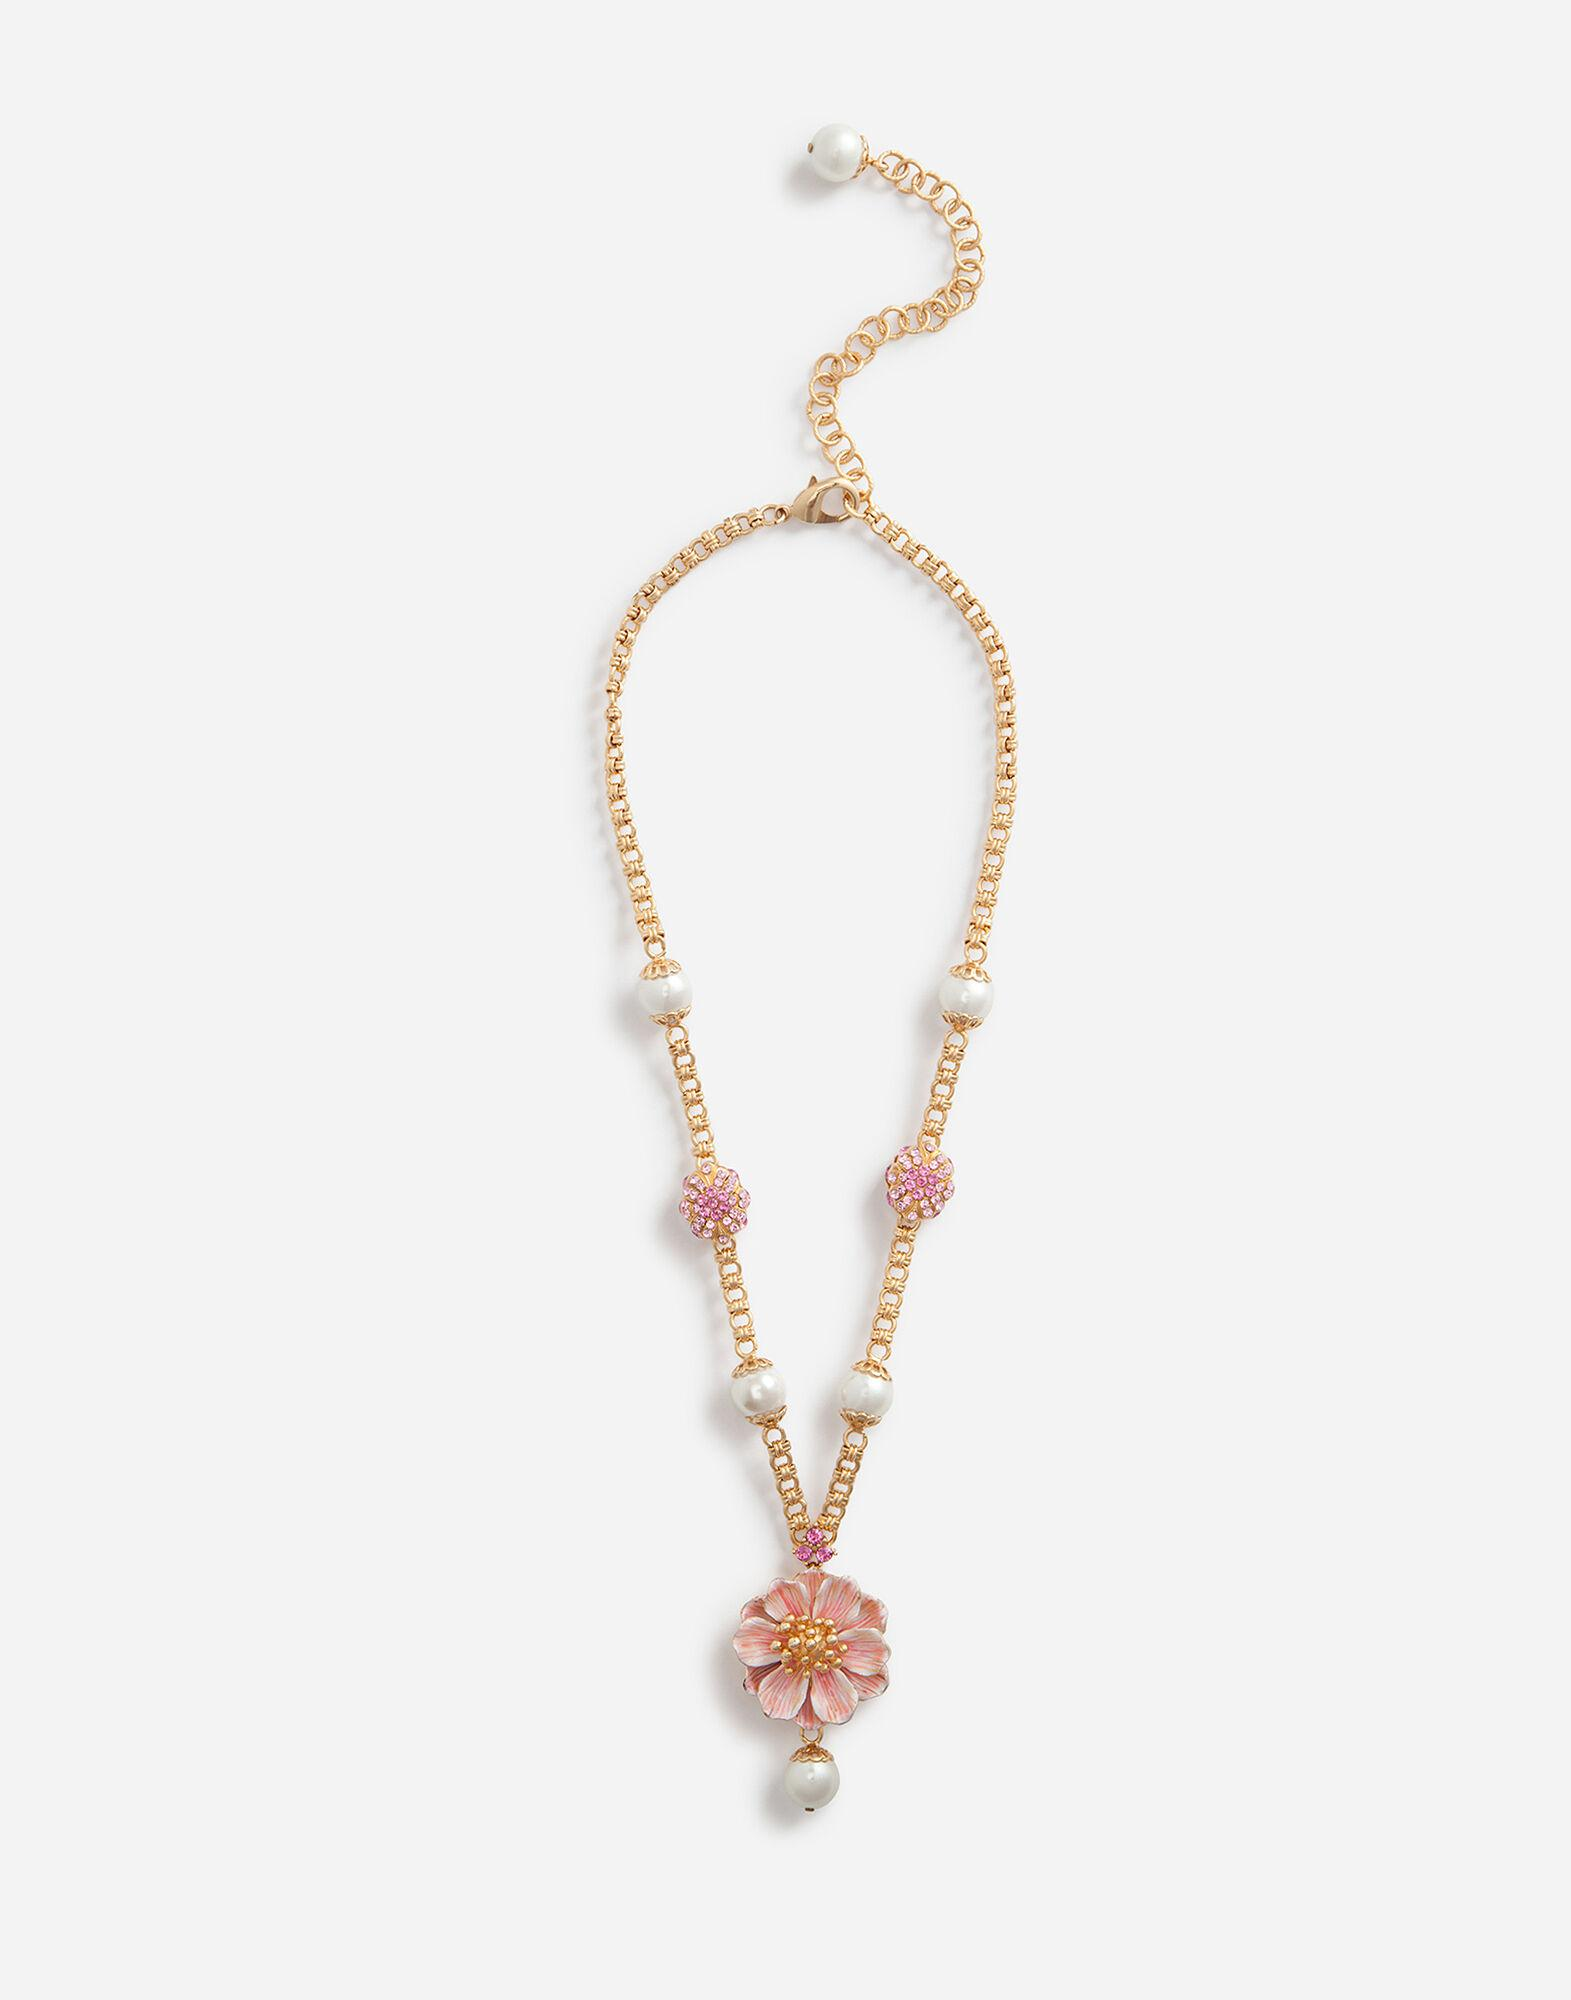 Necklace with resin pearls and flower pendant